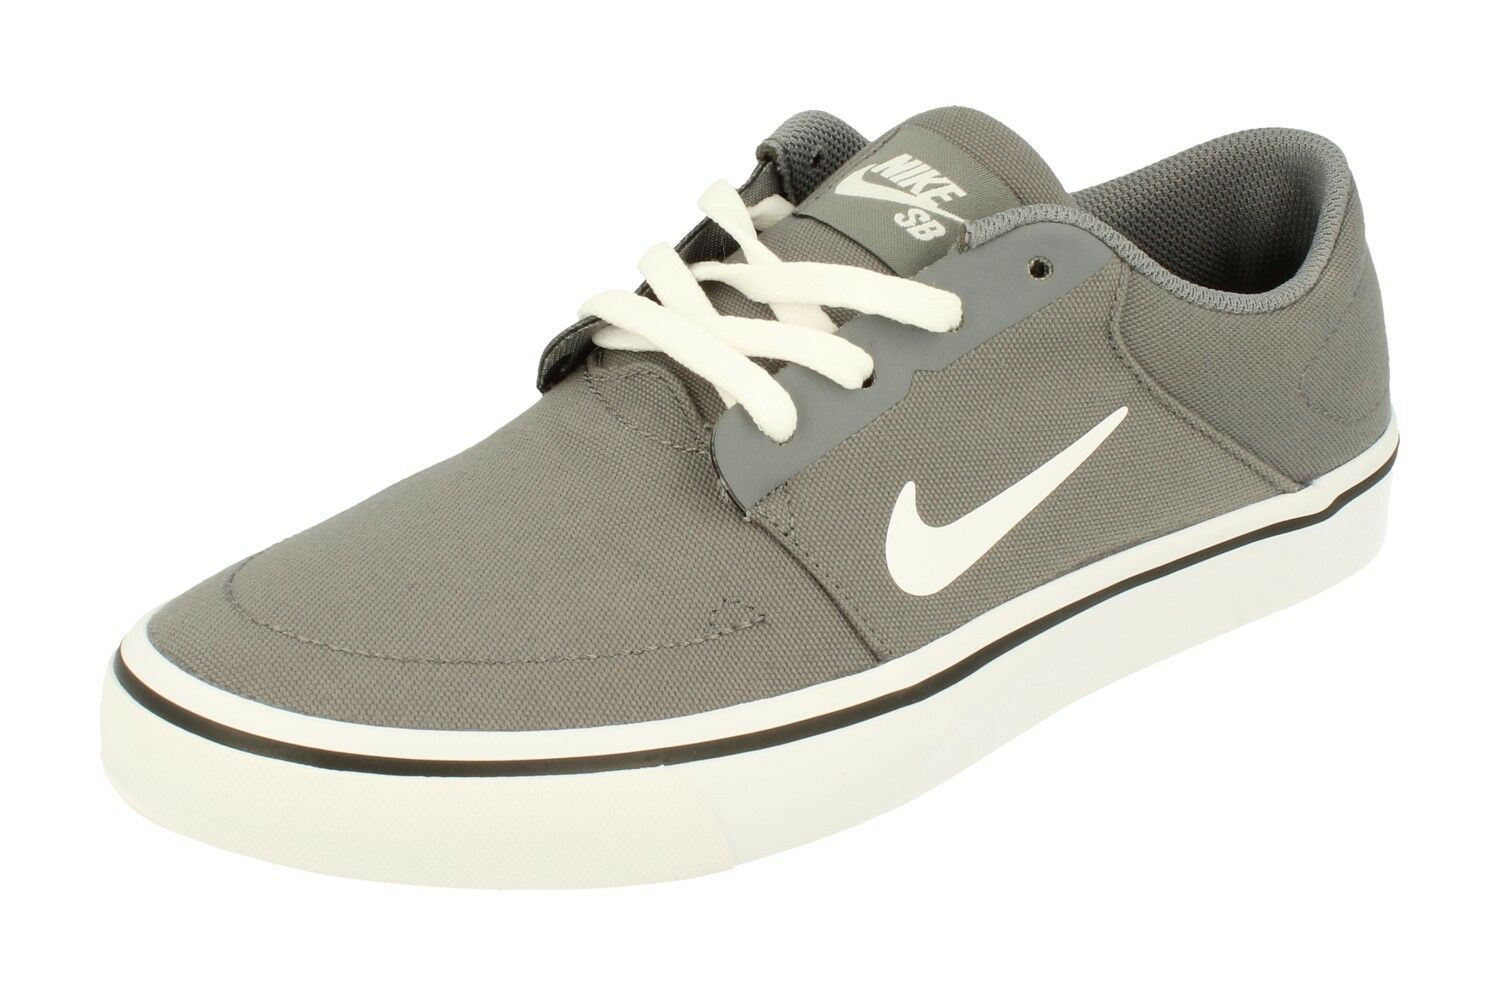 Nike Sb Portmore Canvas Chaussures Hommes Trainers 723874 Baskets Chaussures Canvas 004 cea1a9